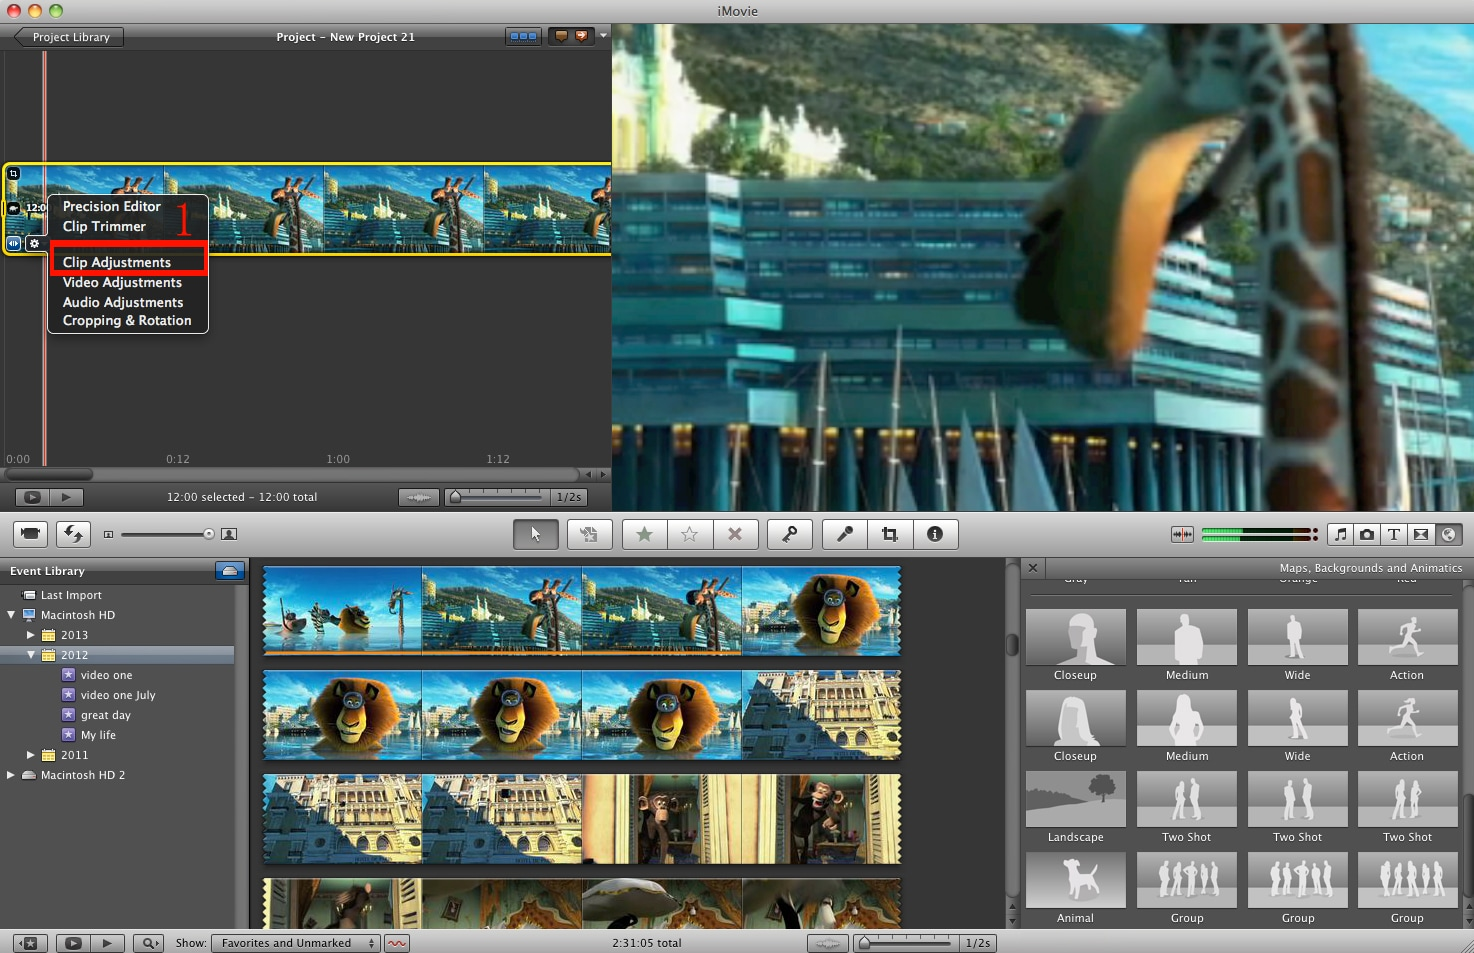 imovie slow motion 08